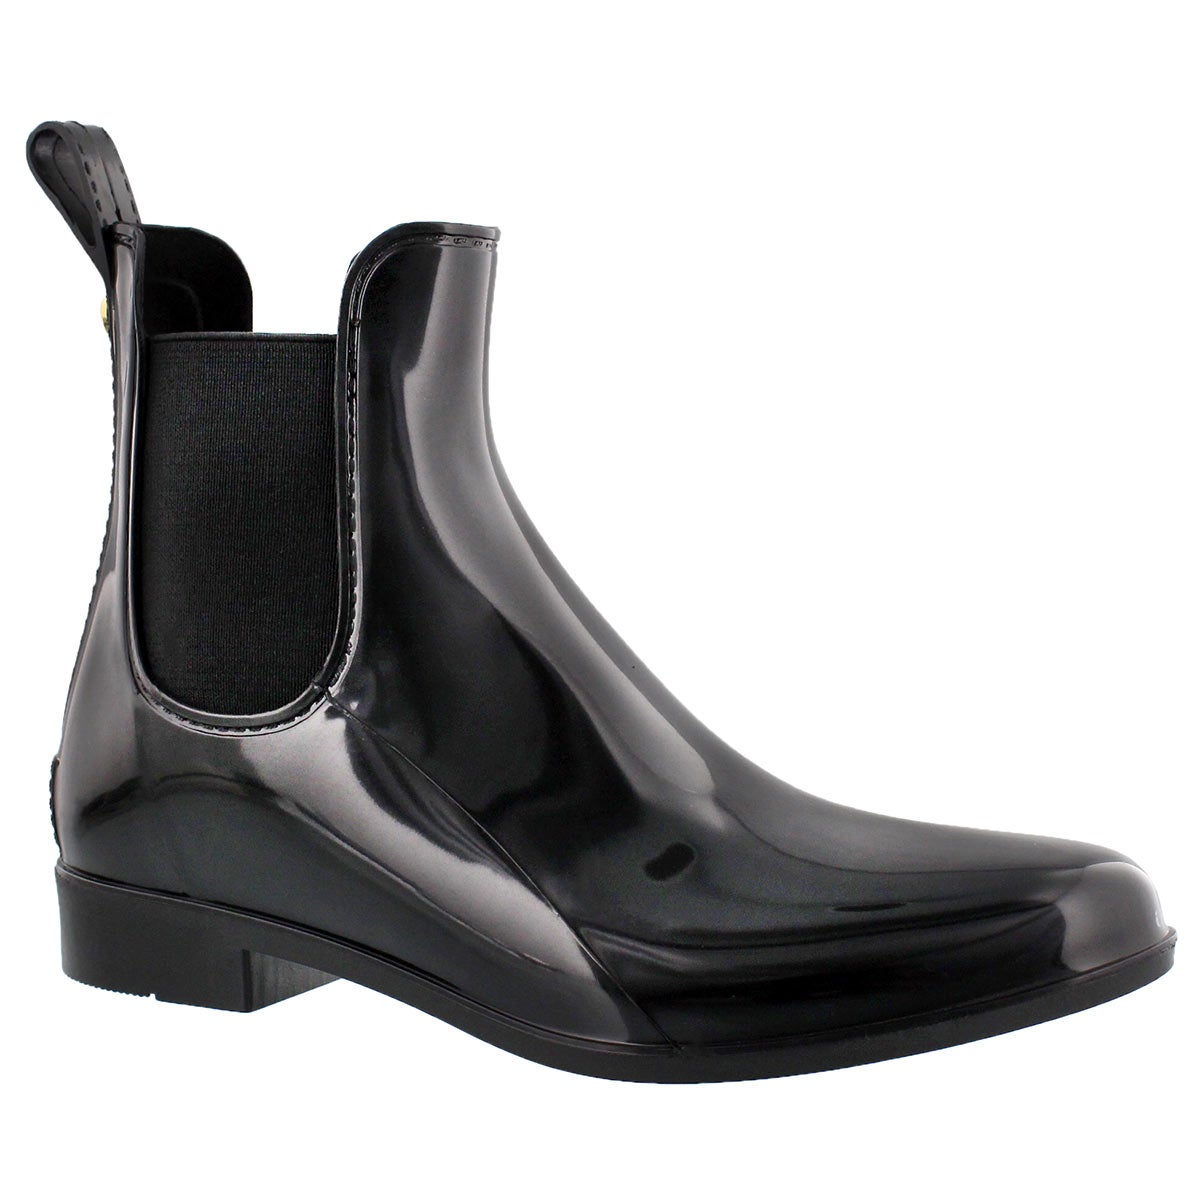 Lds Tinsley black short rain boot